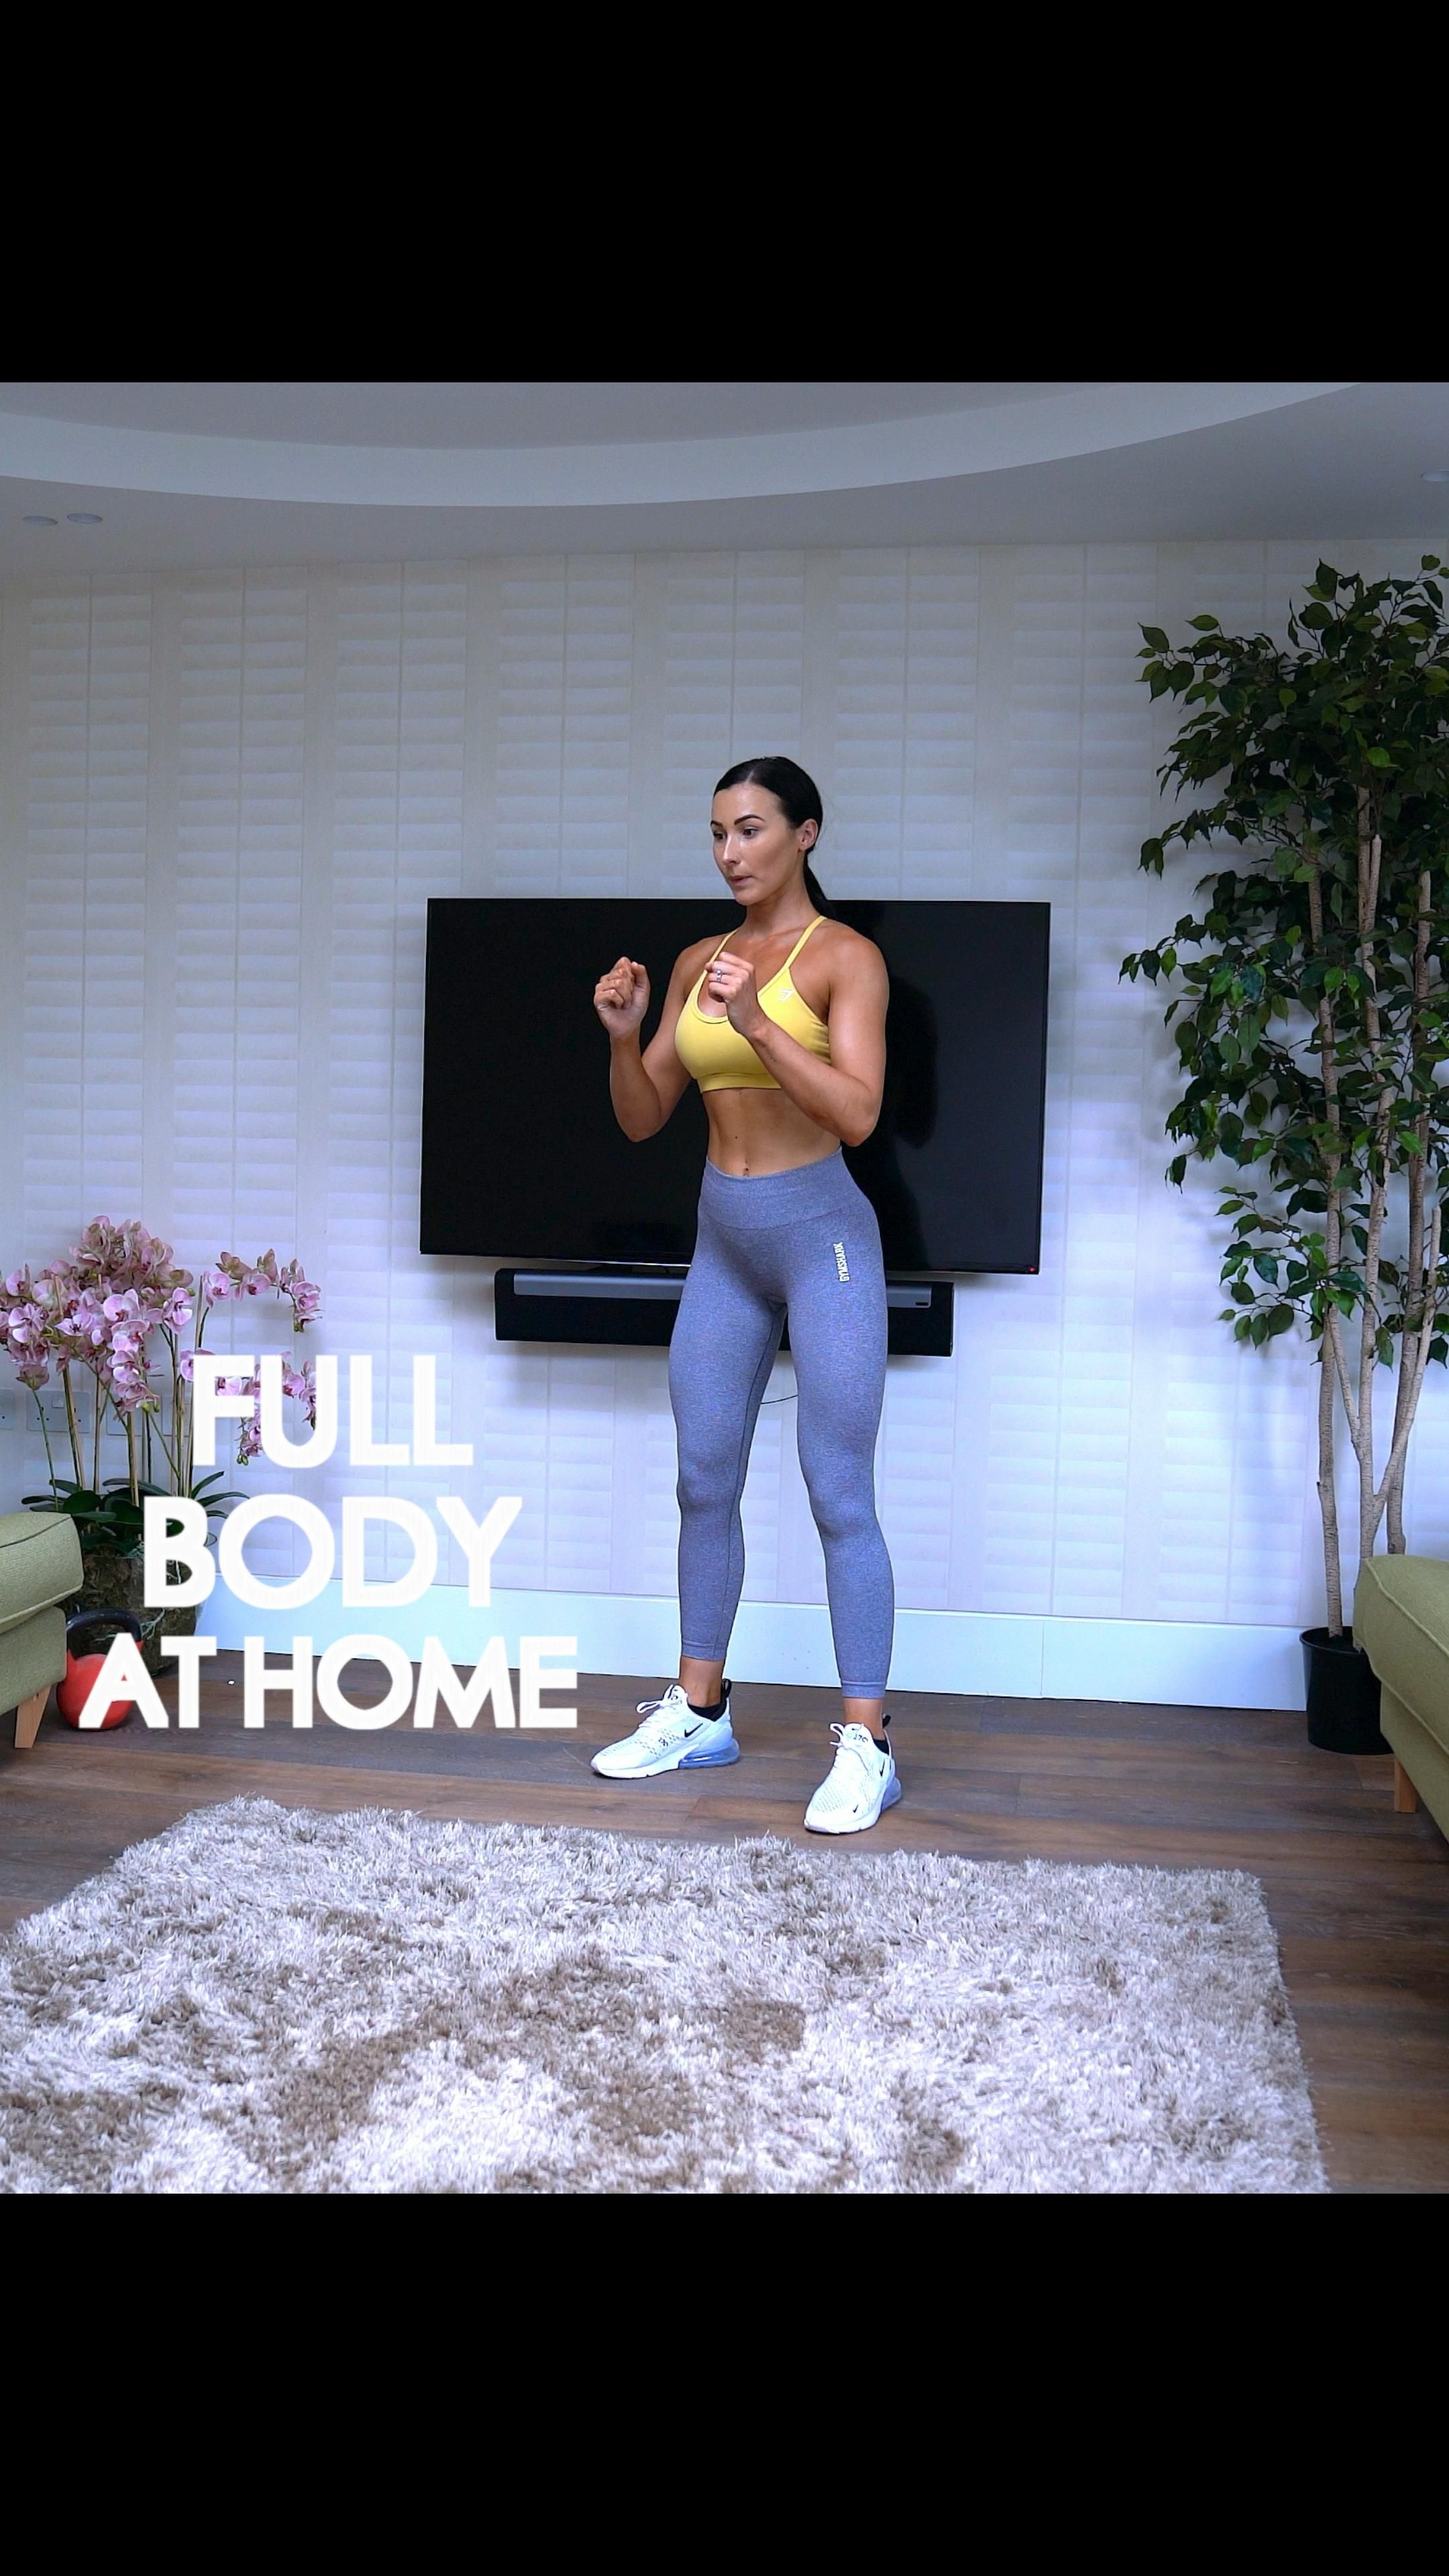 Full body workout at home   StrongandSxy